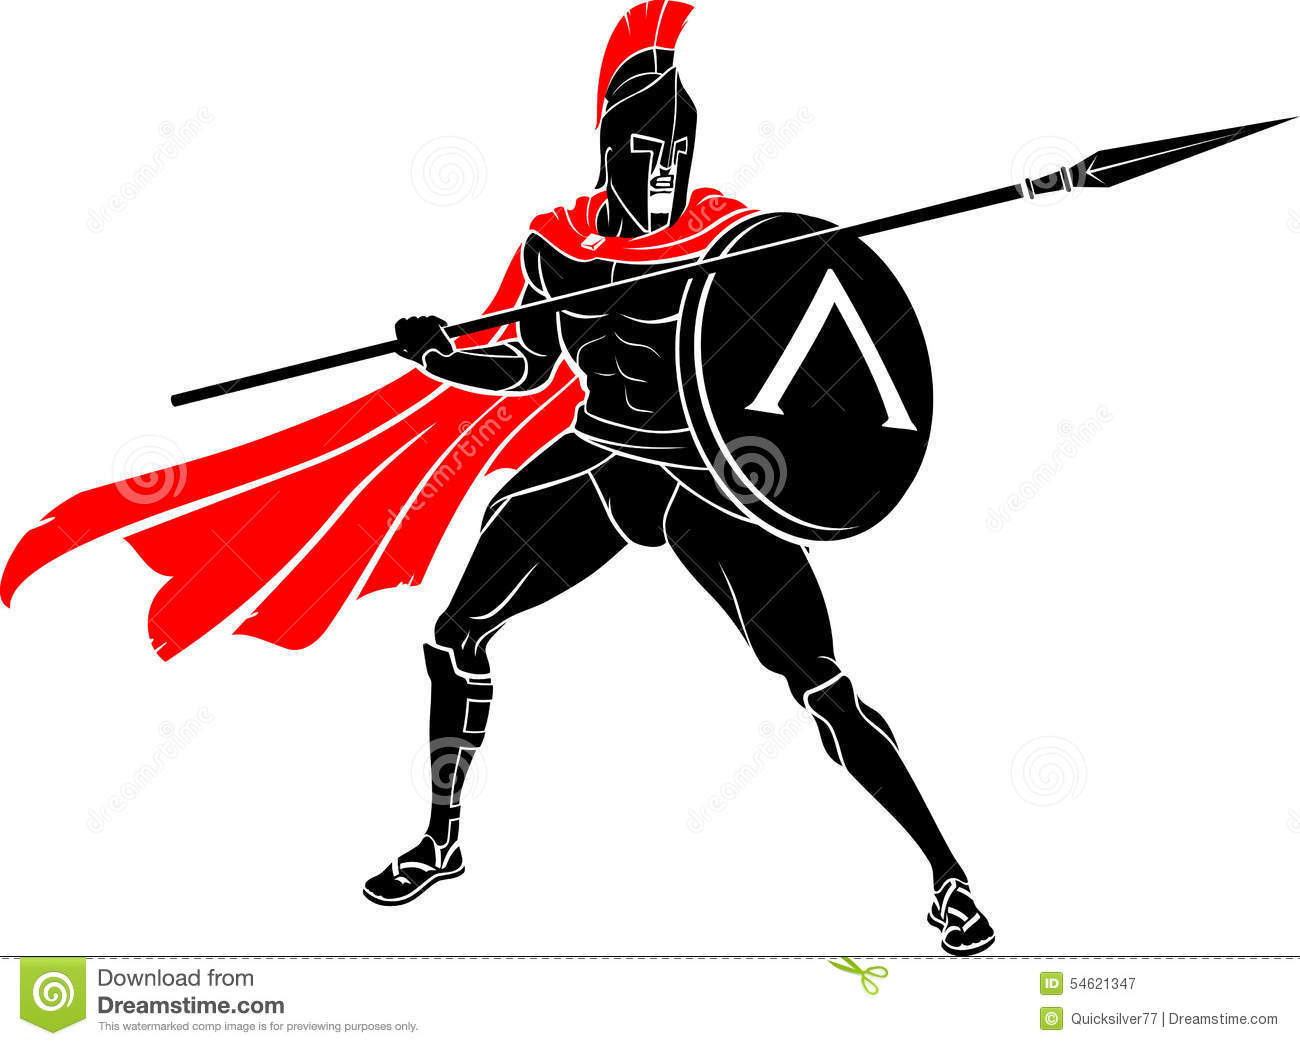 Spartan Battle Warrior Spear And Shield Stock Vector - Image: 54621347